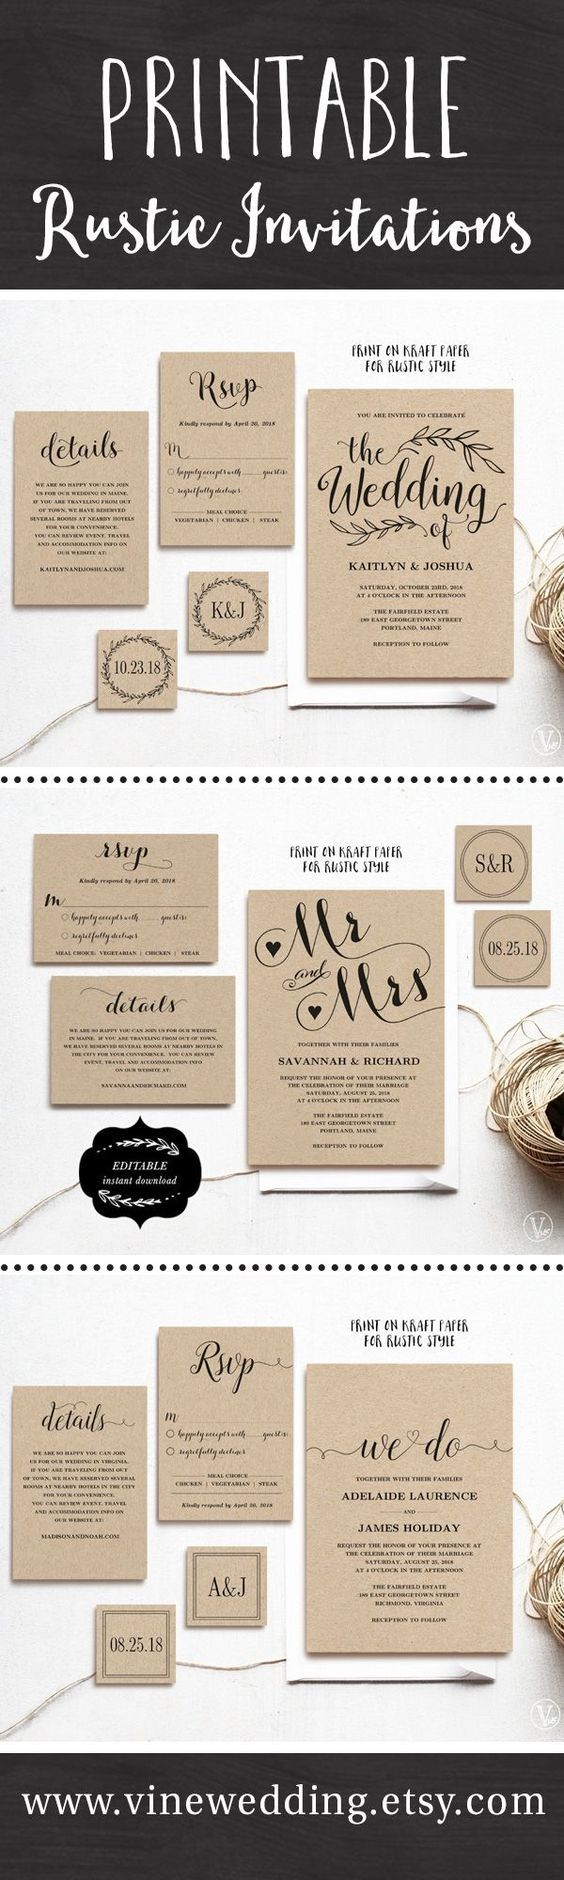 irish wedding invitations templates%0A Beautiful rustic wedding invitations  Editable instant download templates  you can print as many as you